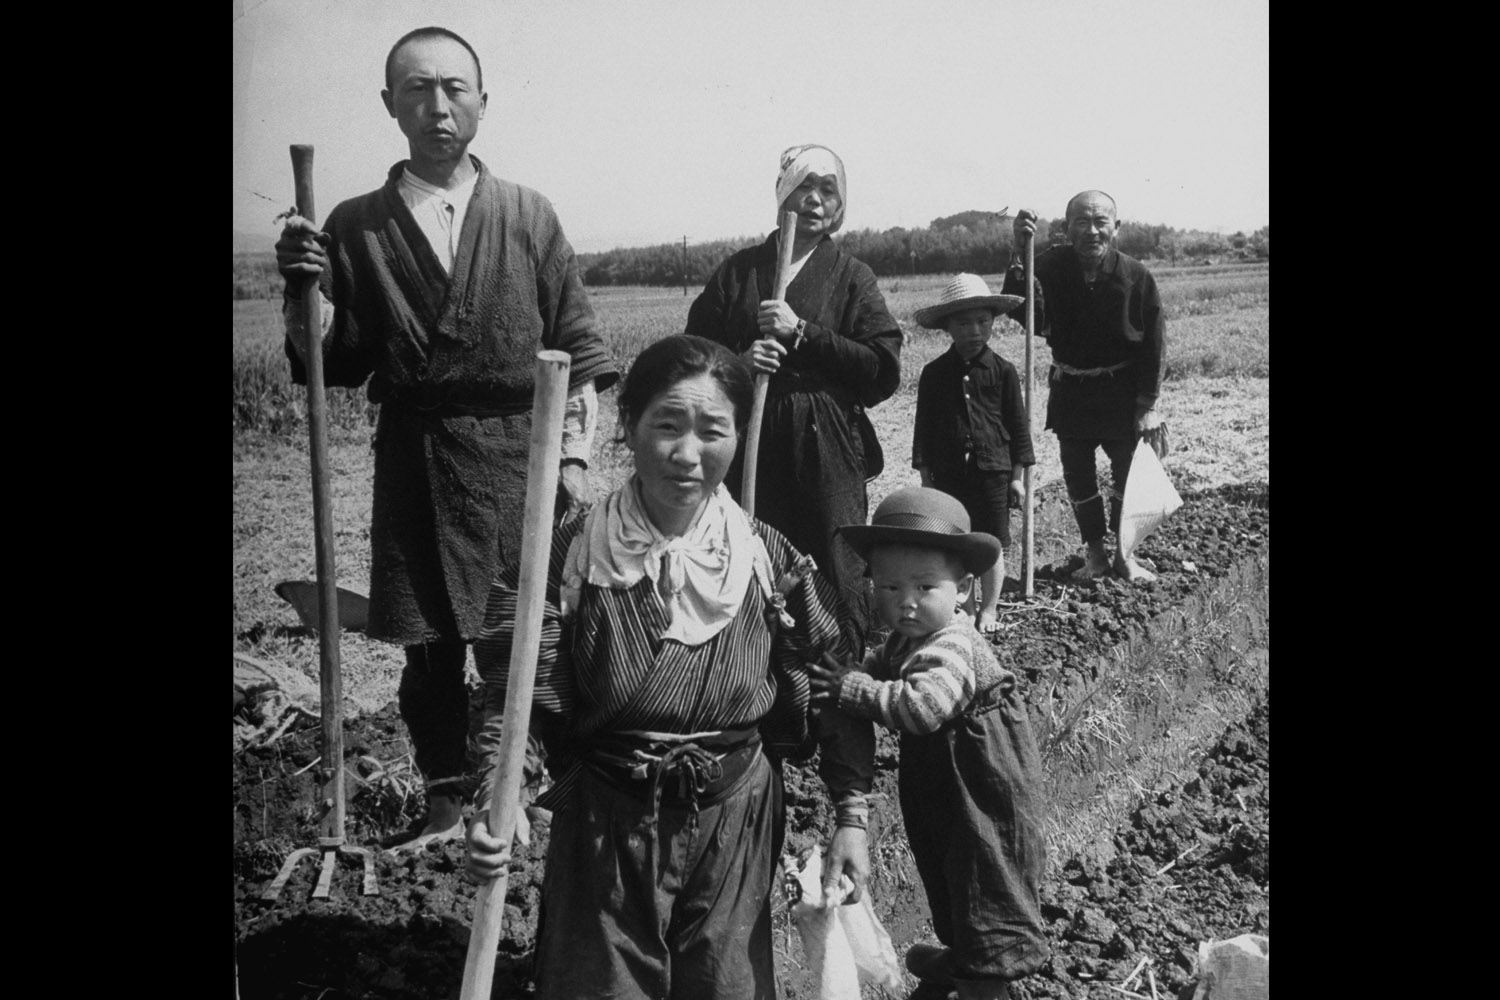 A postwar Japanese farming family posing with their tools in the field, 1948.